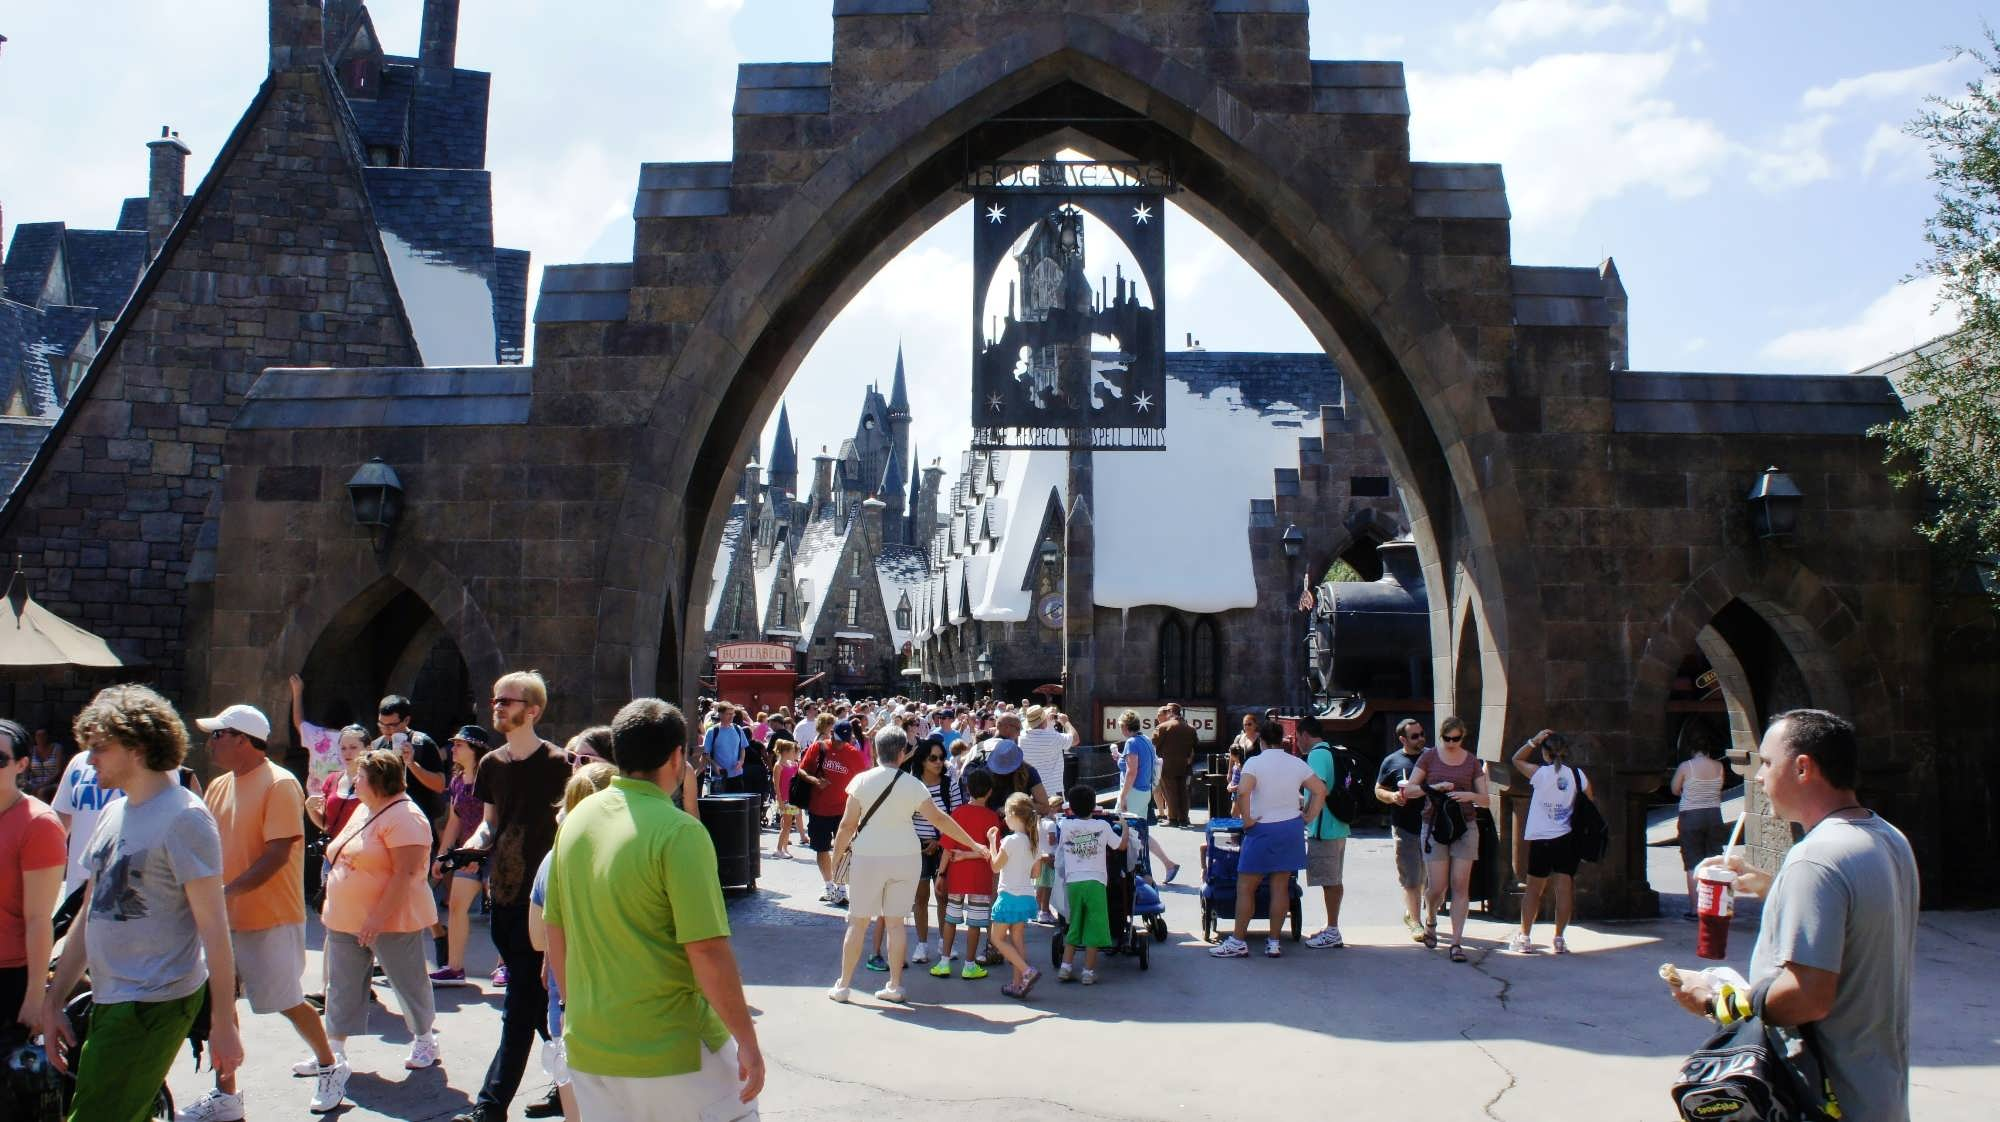 trip to wizarding world of harry potter